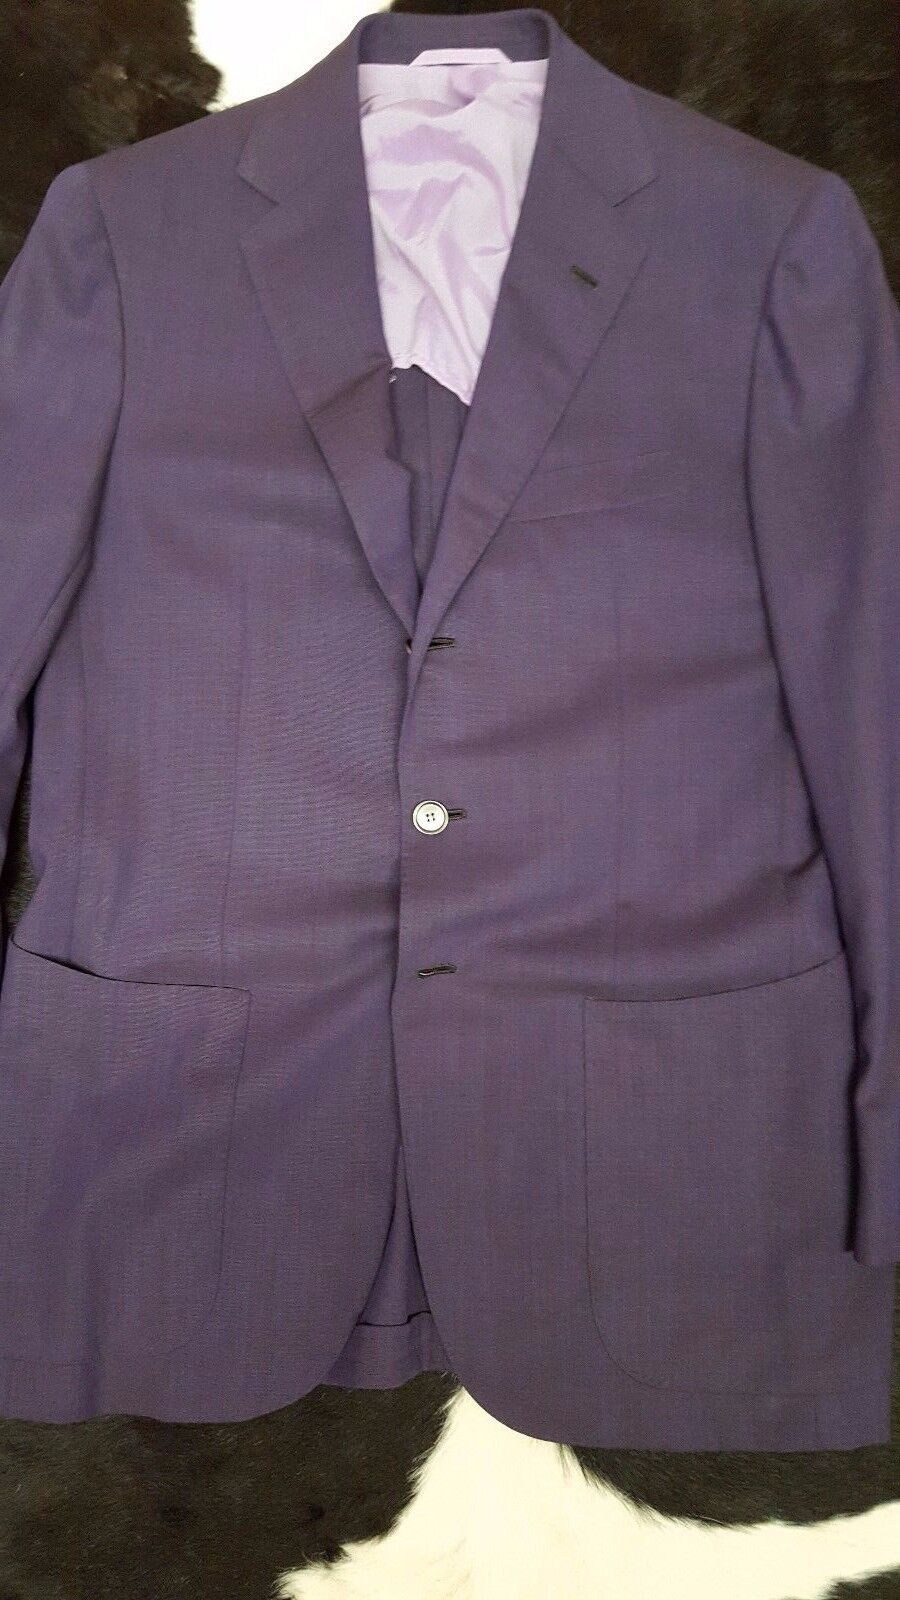 NWT 5000 SARTORIO BY KITON BLAZER 38 40 FULL CANVAS ALL HAND MADE DECONSTRUCTED